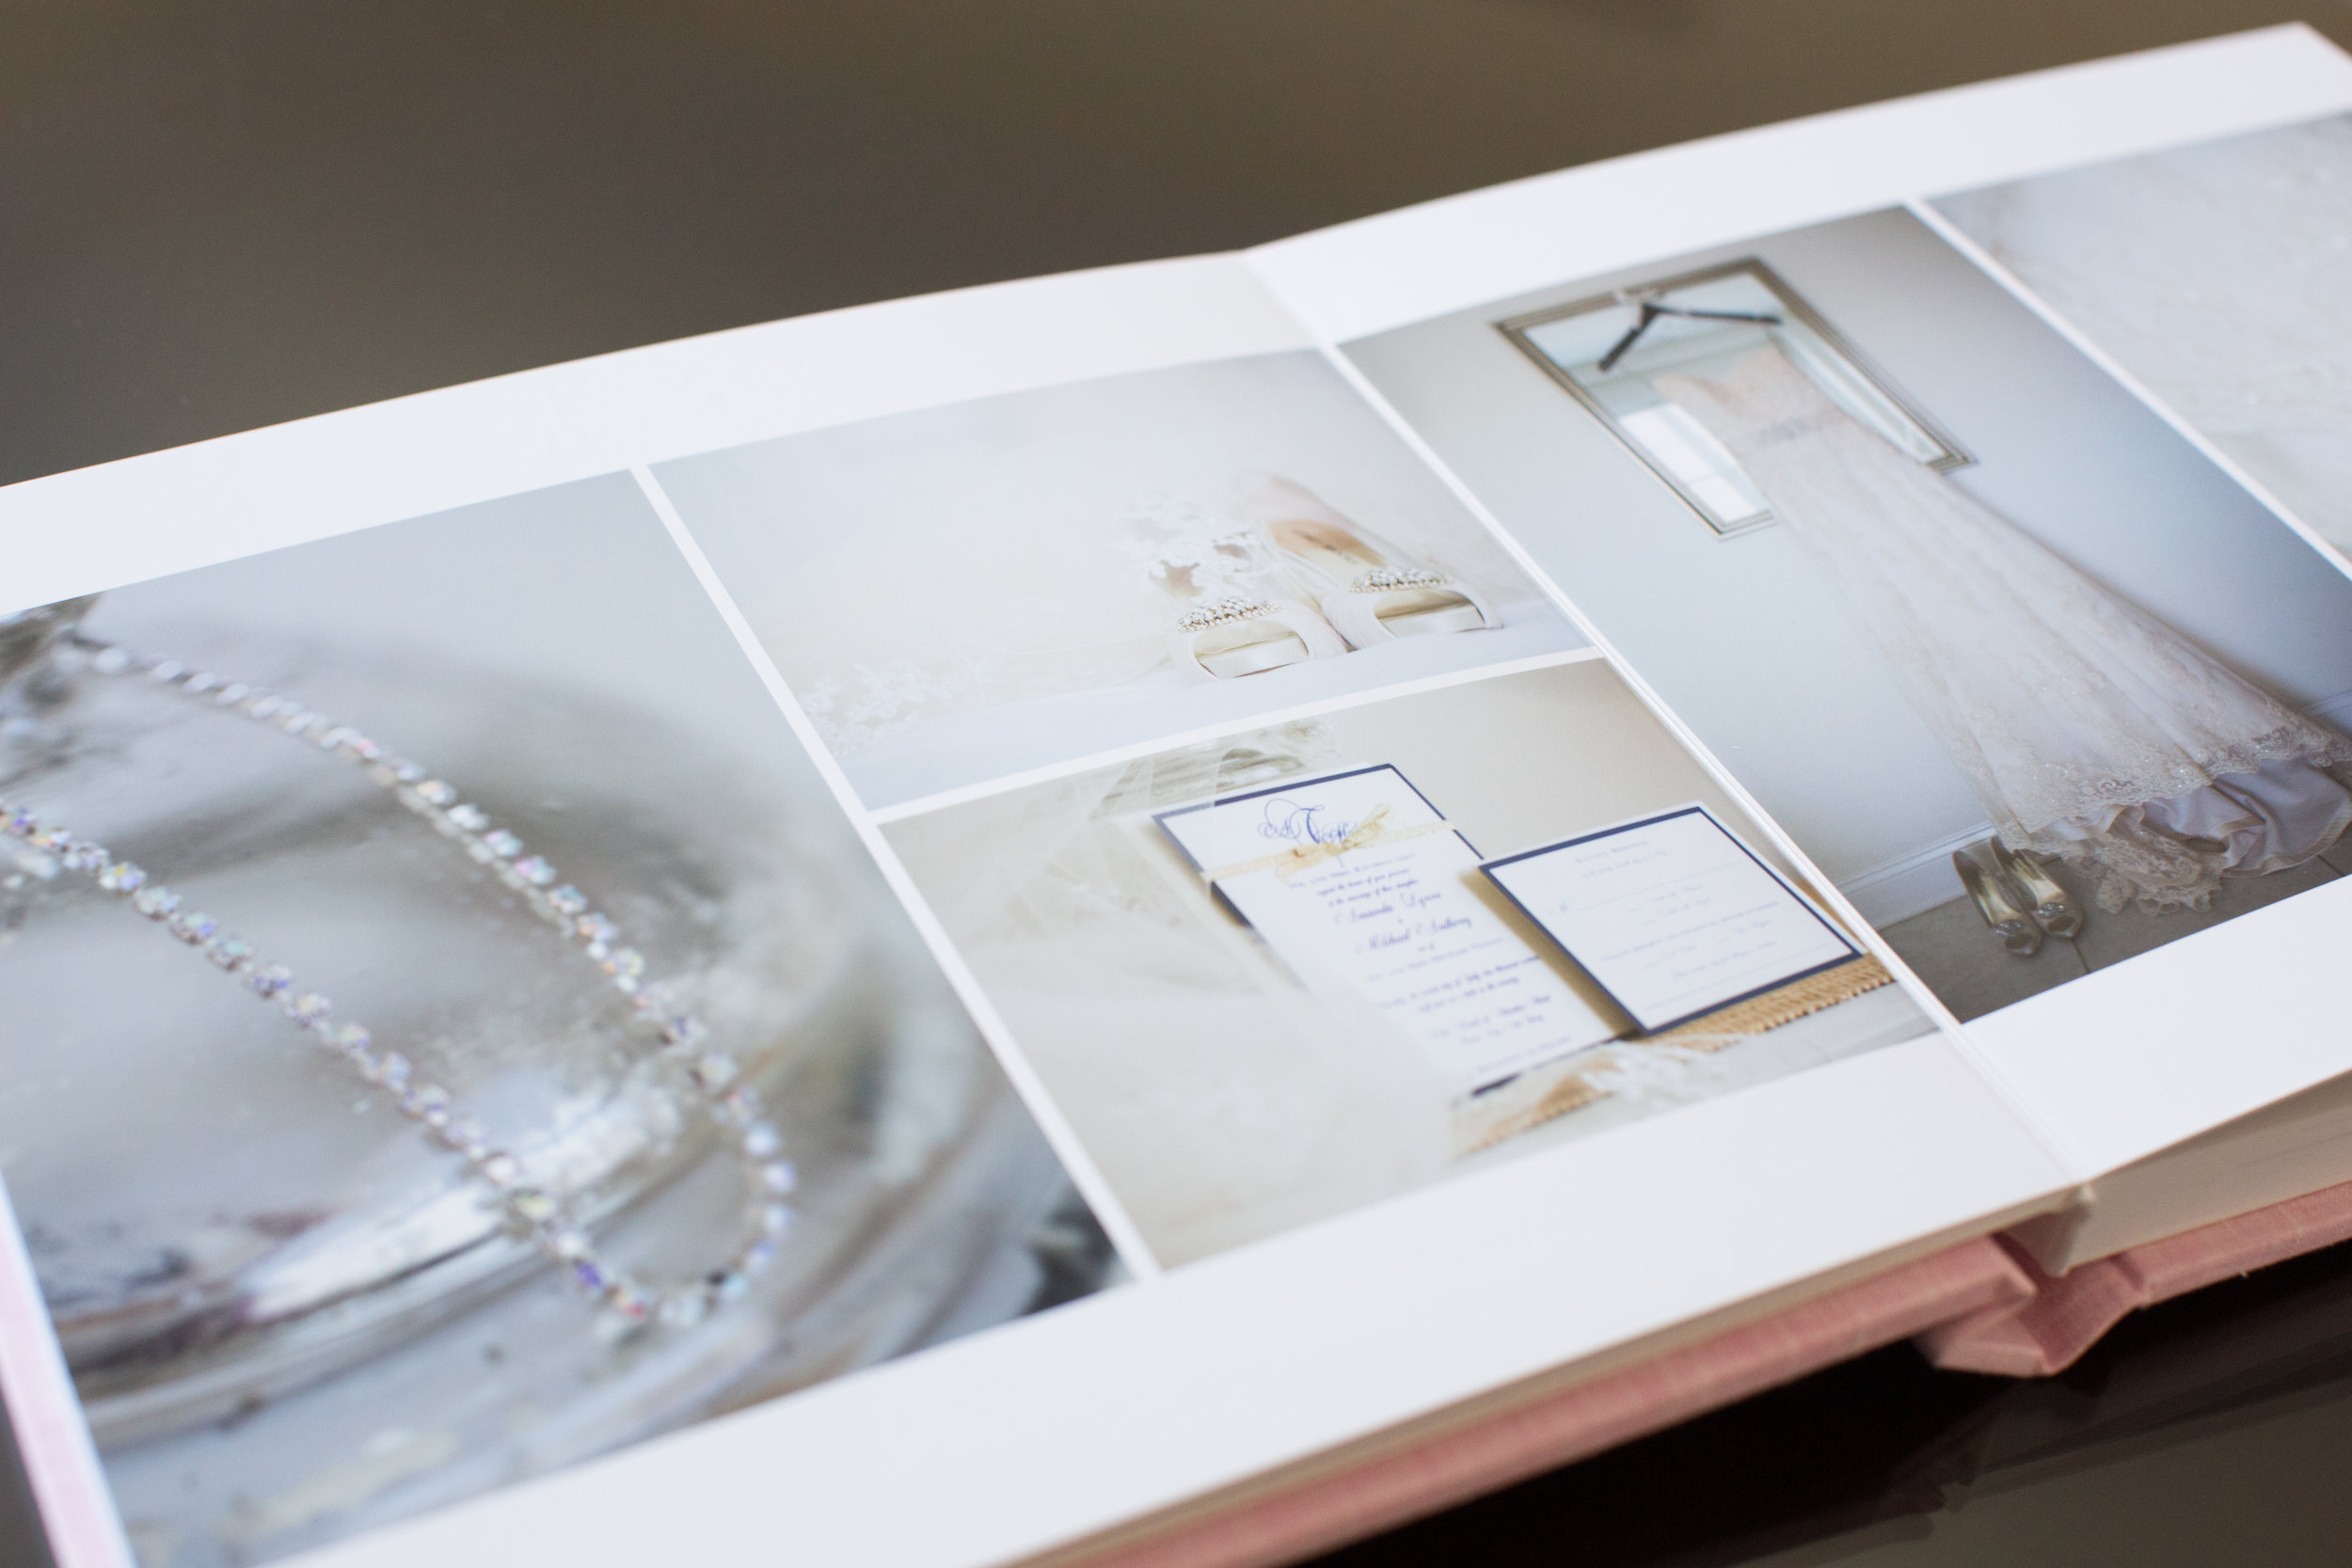 I love seeing what photographs my brides and grooms choose for their wedding albums. This was a sample album, and I was super excited to include all of the pretty little details!